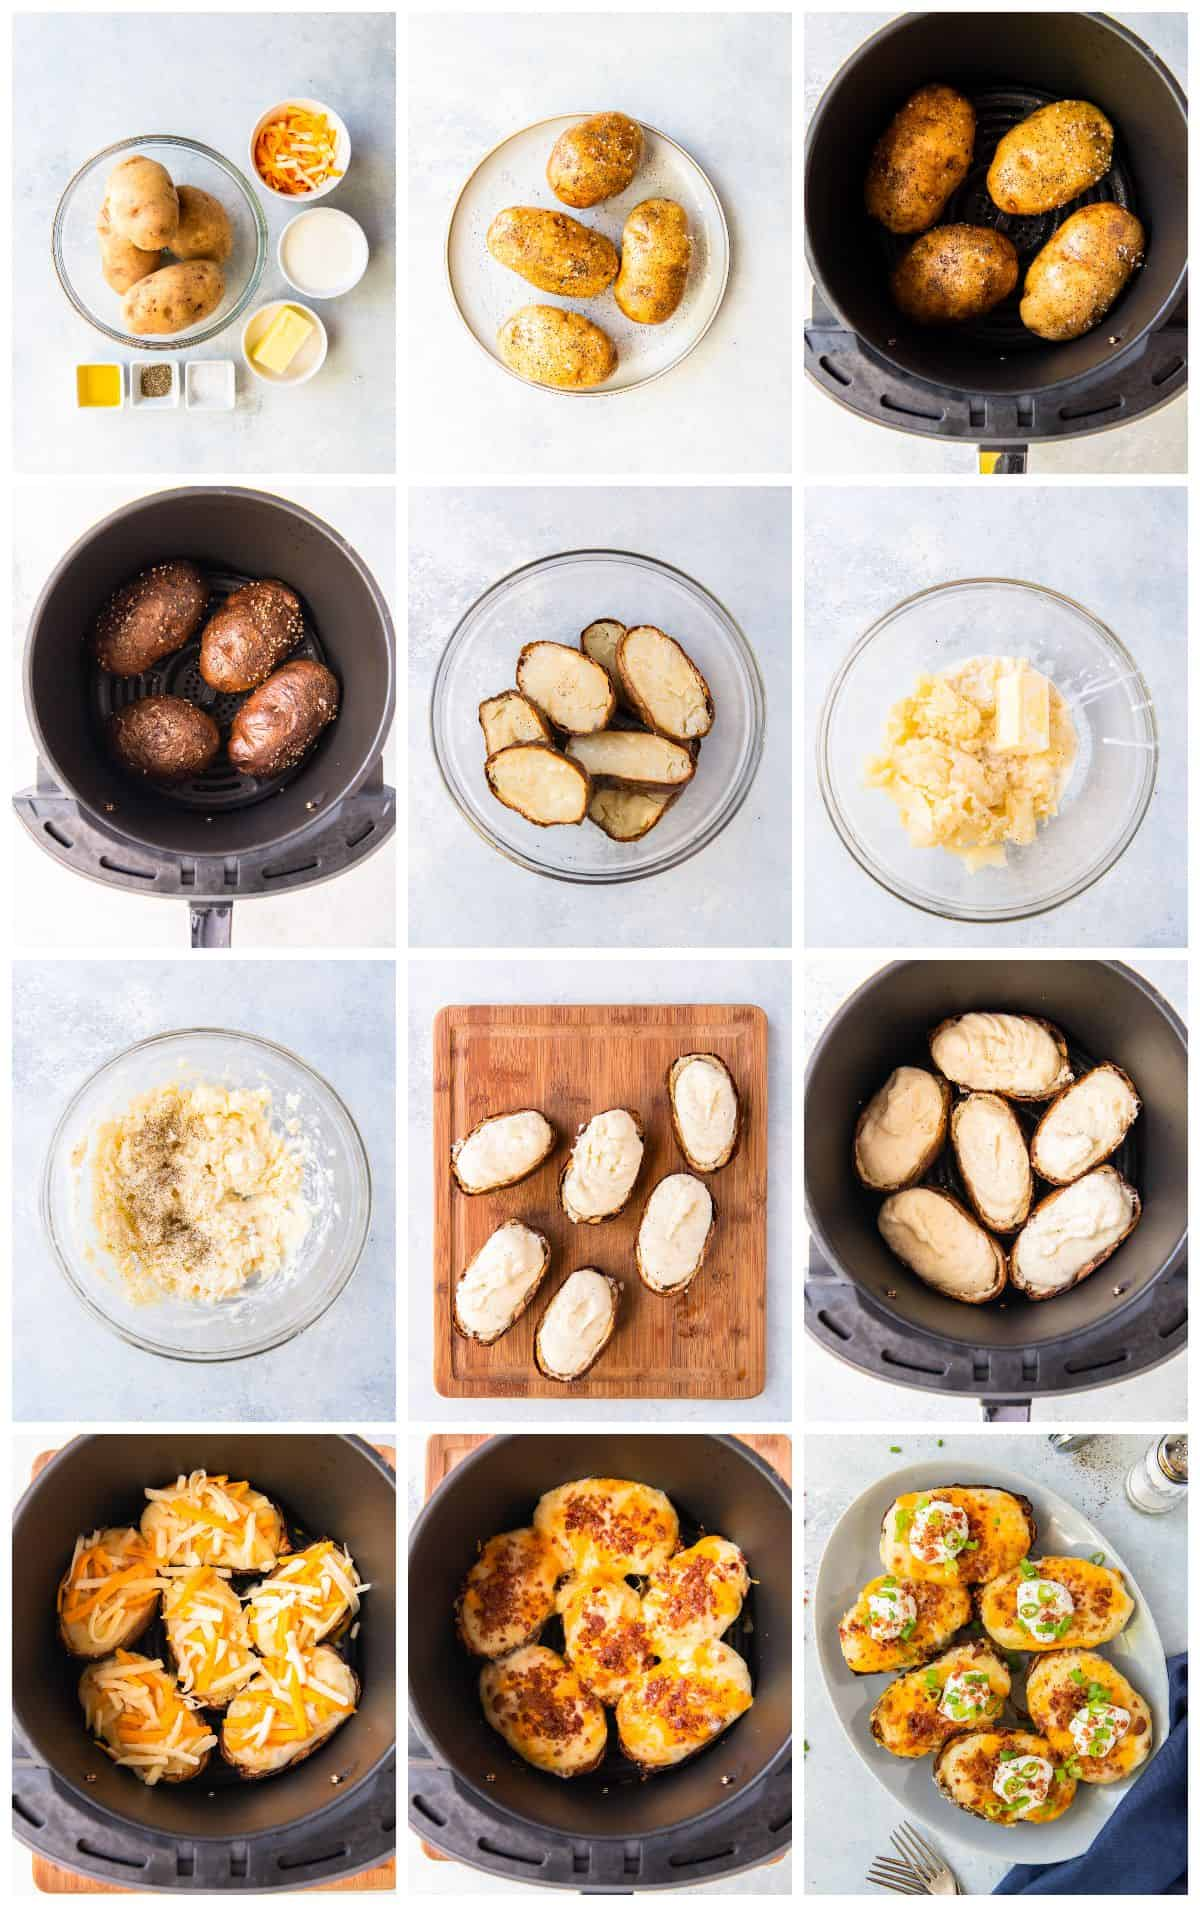 step by step photos for how to make air fryer twice baked potatoes